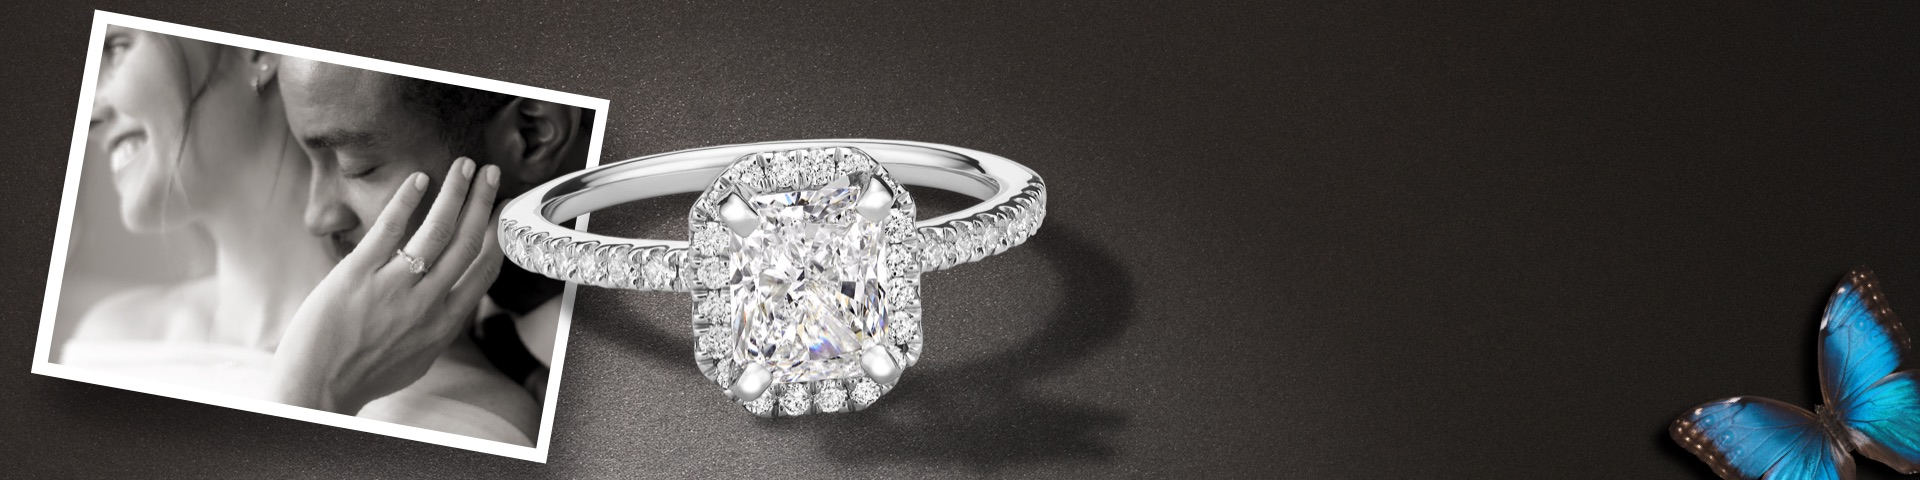 white gold cushion cut engagement ring with halo, bride and groom